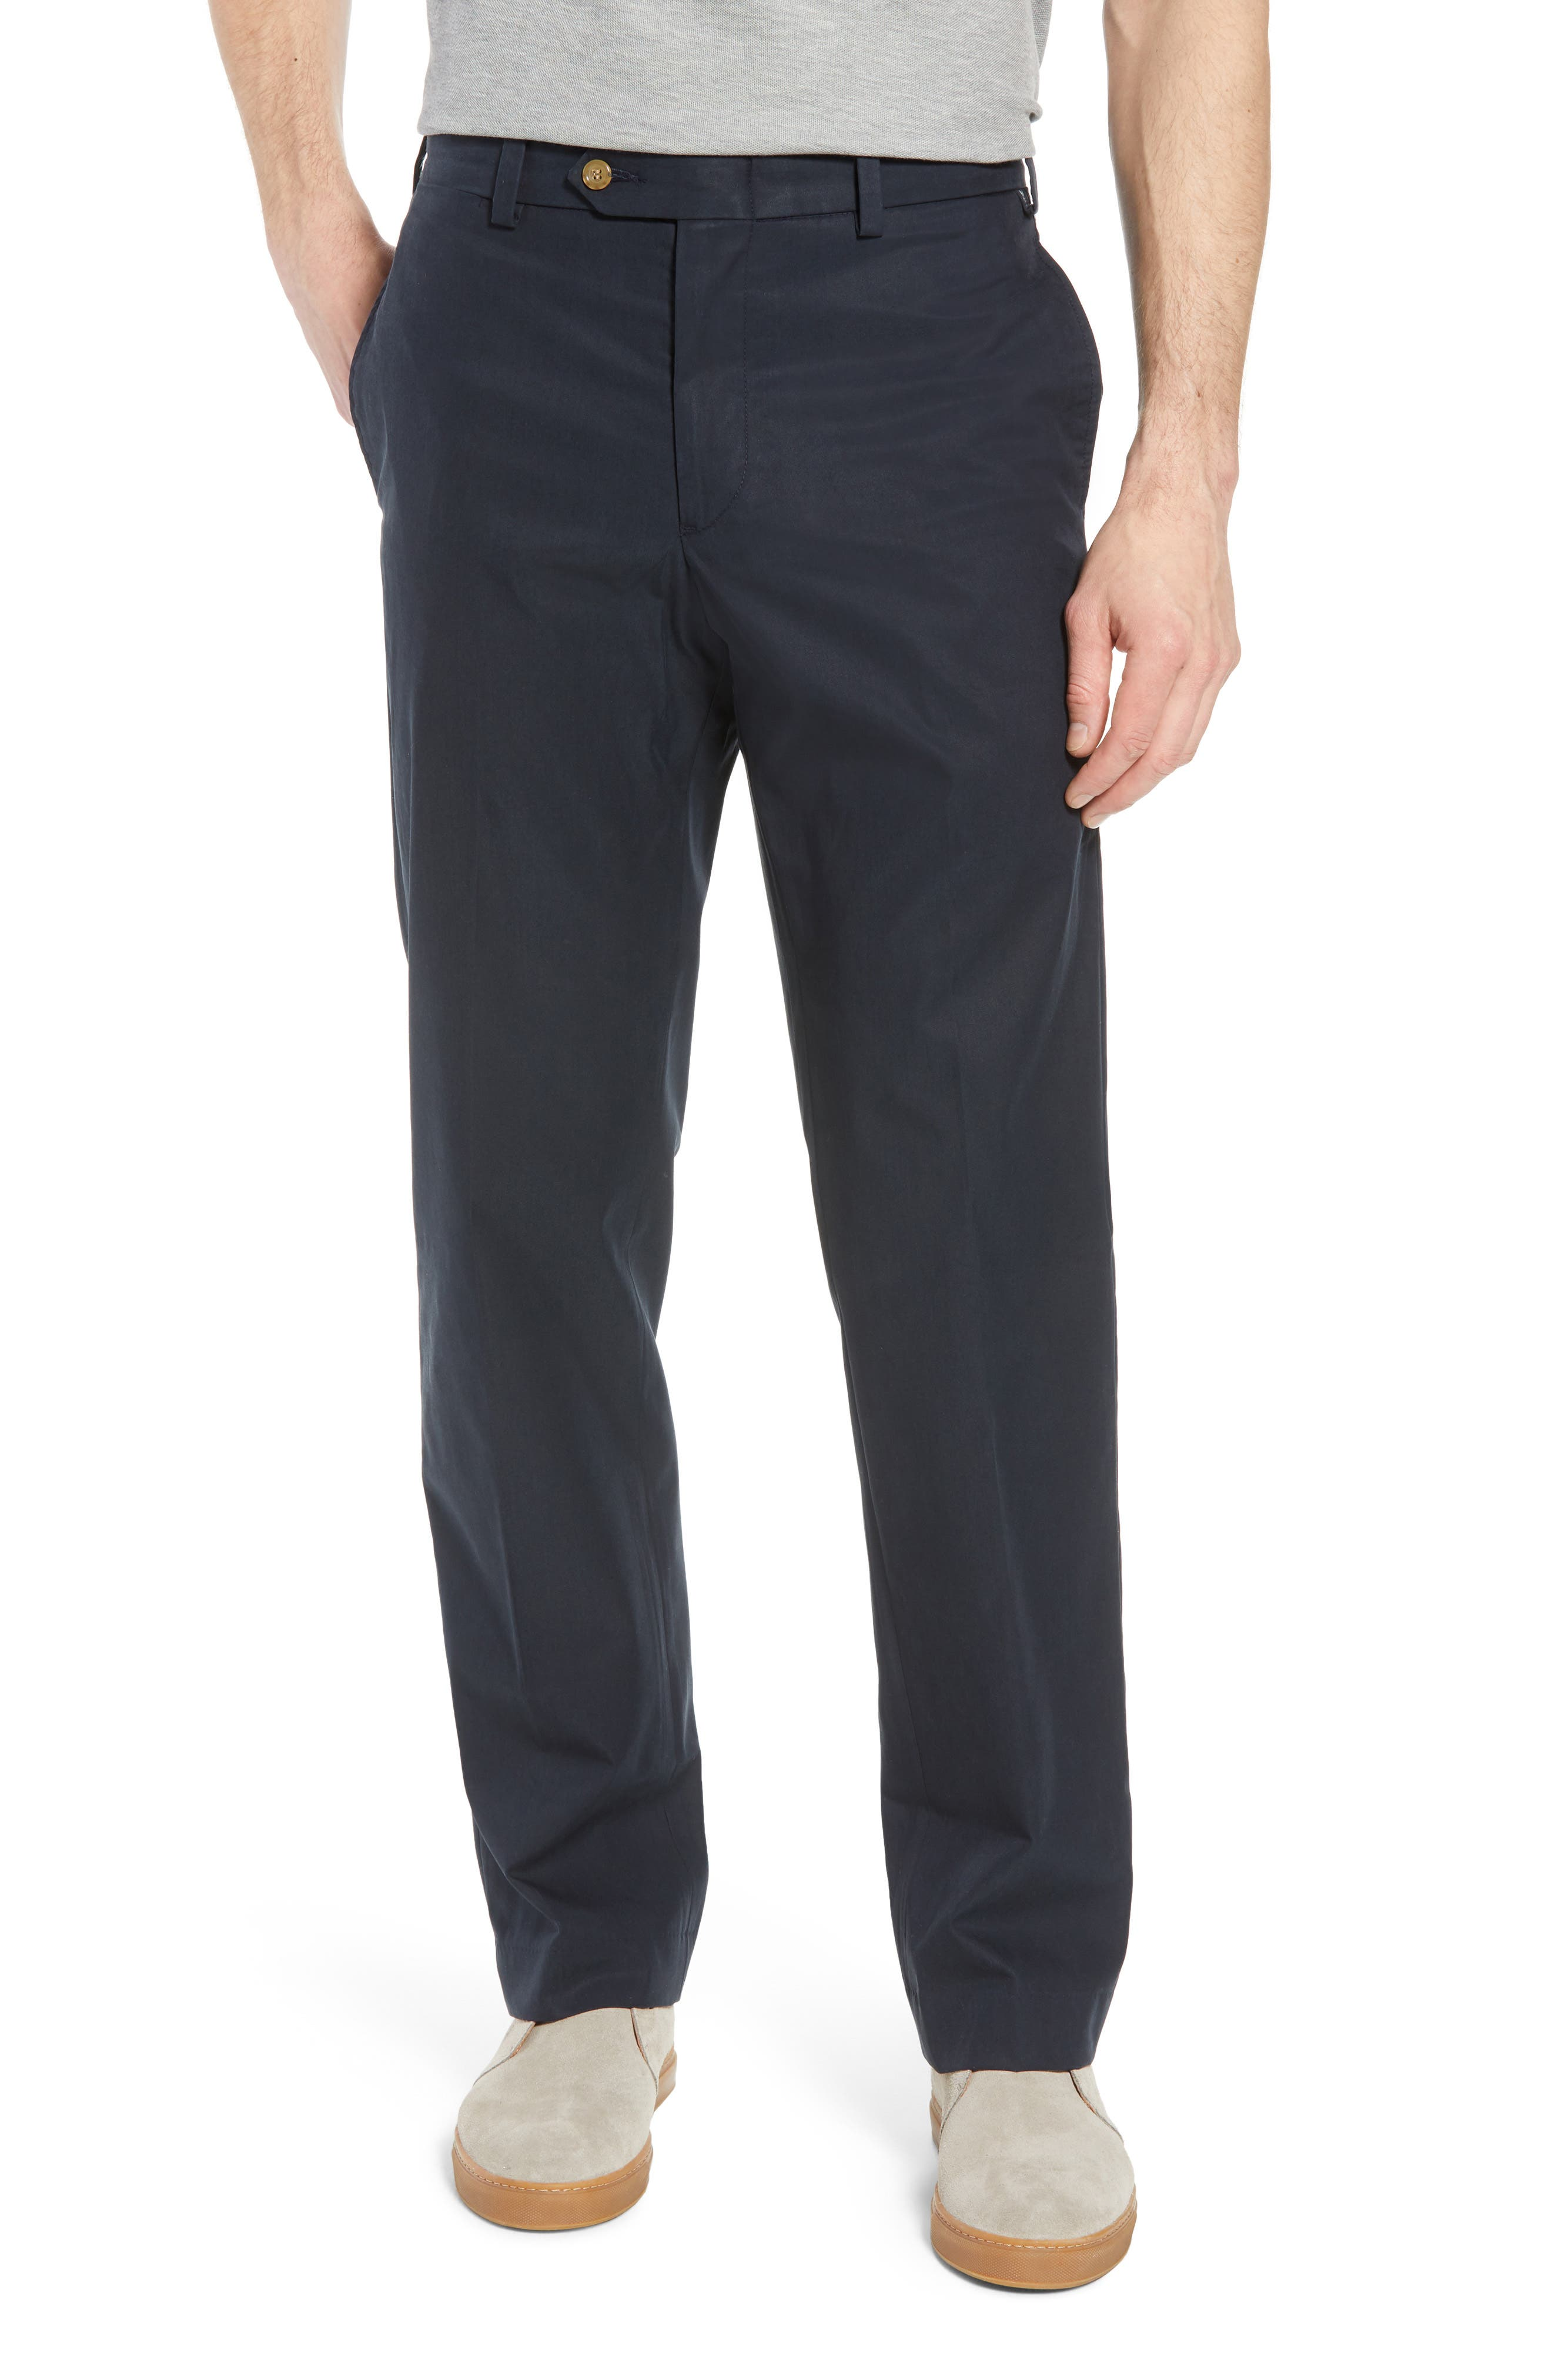 M2 Classic Fit Flat Front Travel Twill Pants,                         Main,                         color, Navy